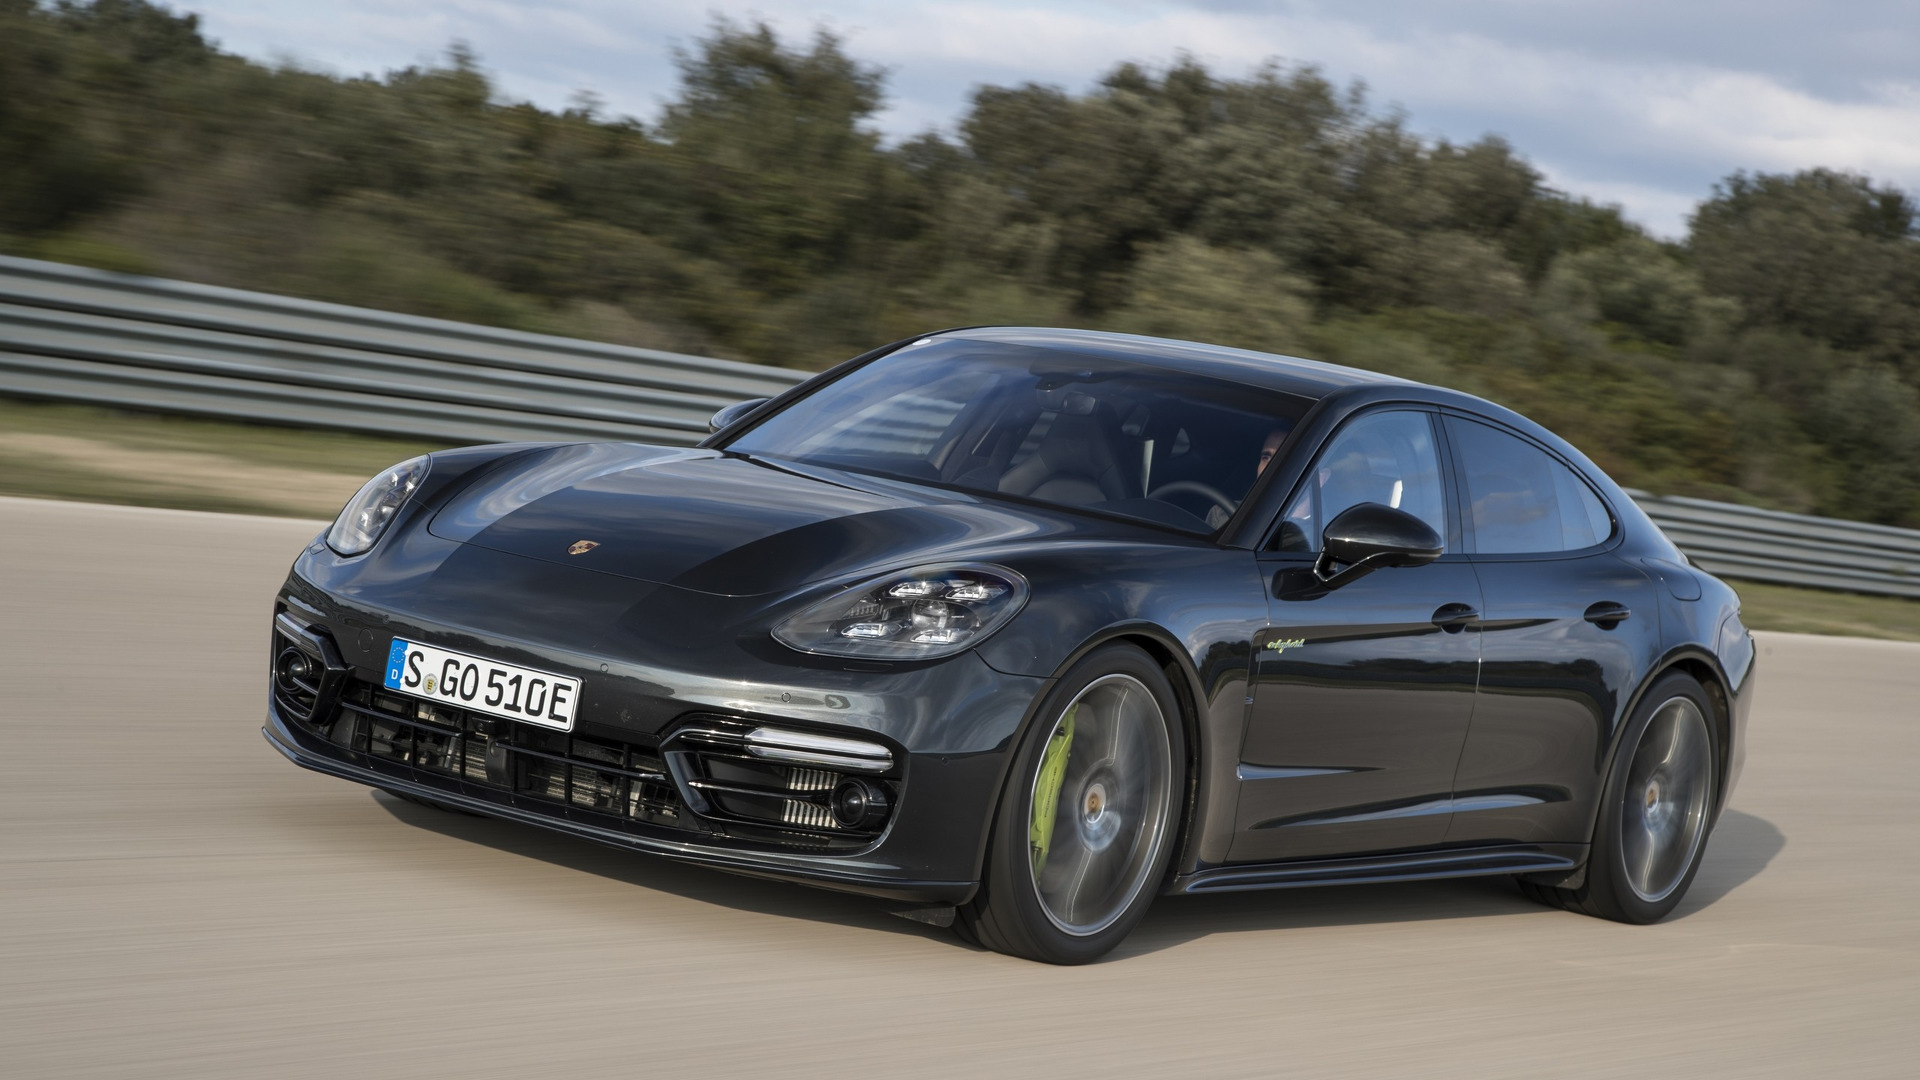 2018 porsche panamera turbo s e hybrid unleashes 680 hp and 627 lb ft. Black Bedroom Furniture Sets. Home Design Ideas